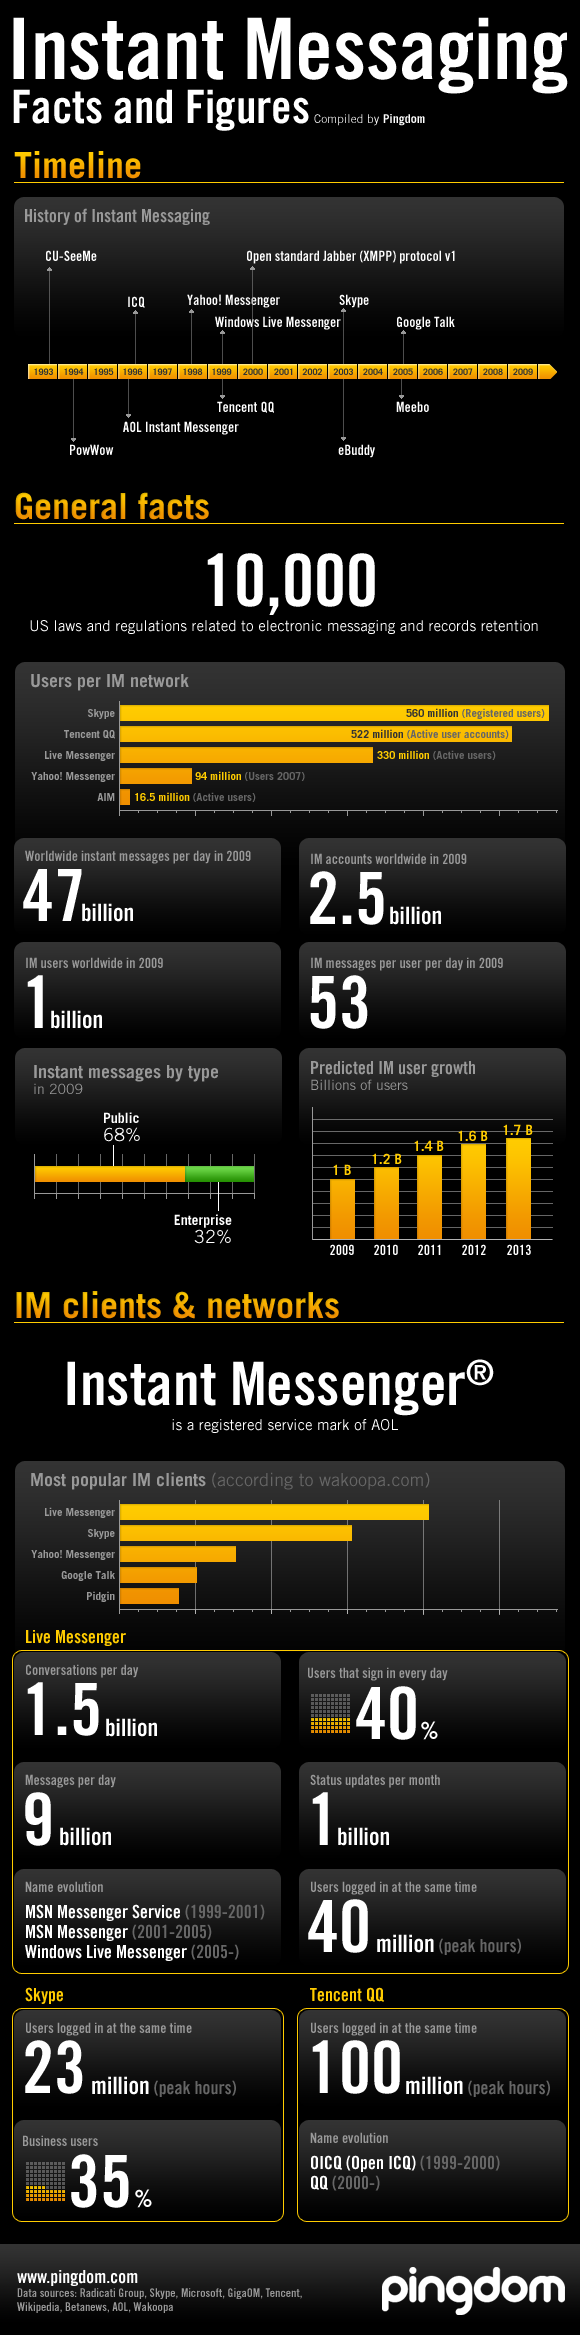 Instant Messaging infographic